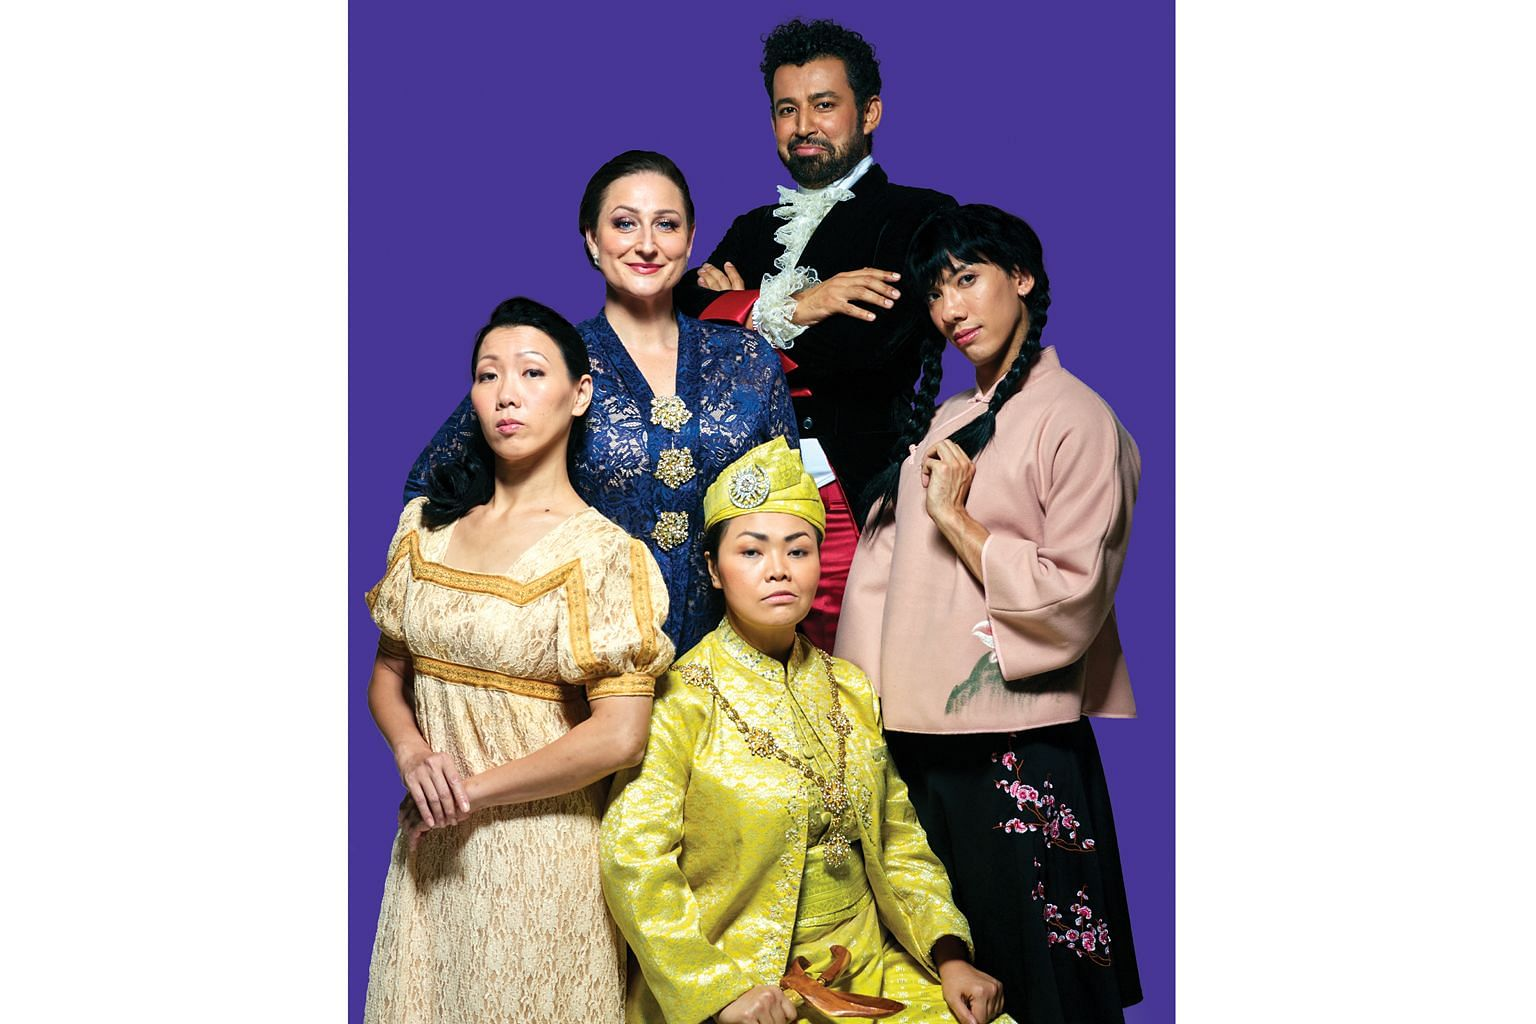 The cast (clockwise from top) Ghafir Akbar and Lian Sutton (in pigtails) from Malaysia, Siti Khalijah Zainal and Koh Wan Ching from Singapore, and Edith Podesta from Australia.